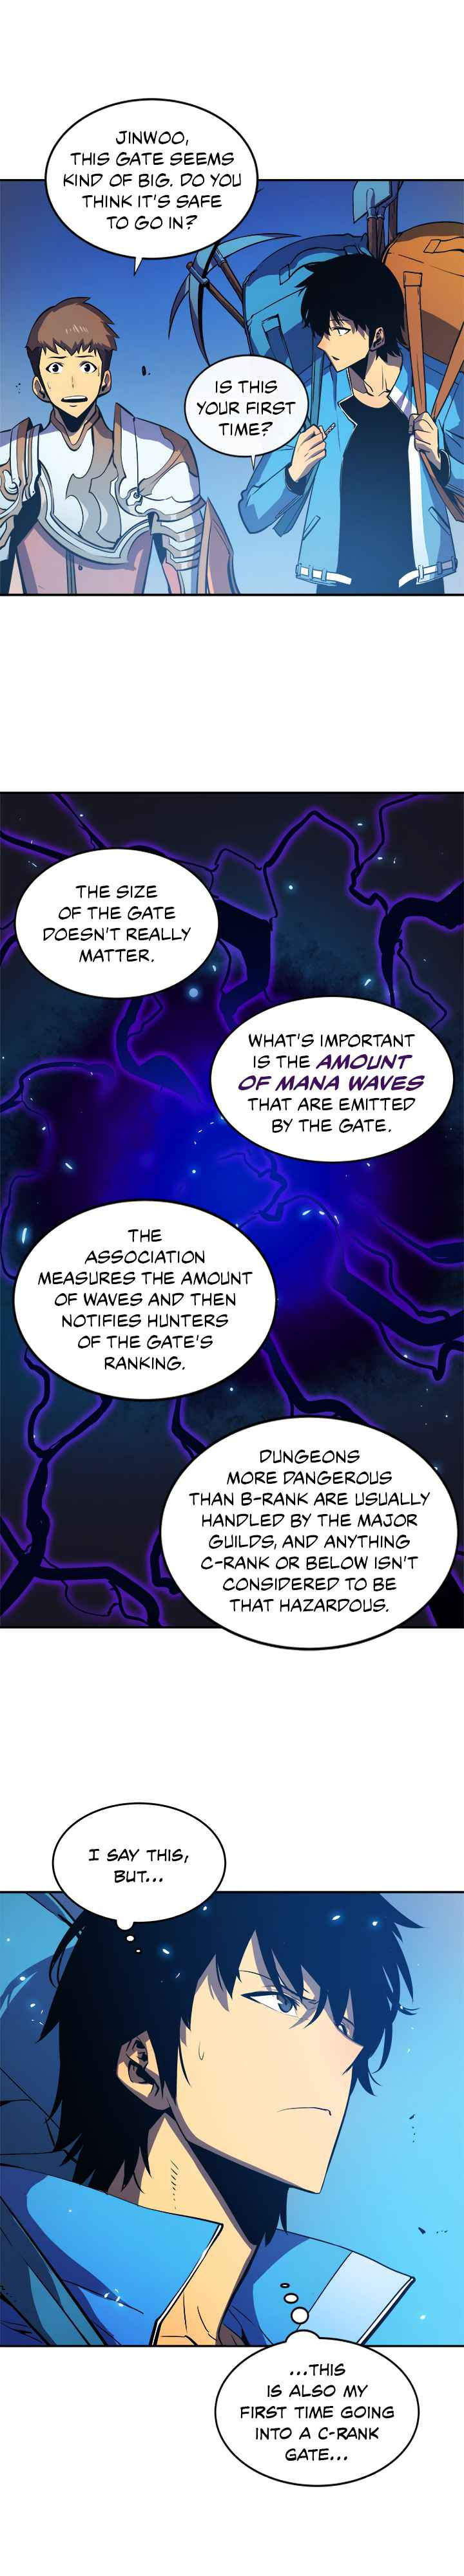 Solo Leveling Chapter 19 Page 7